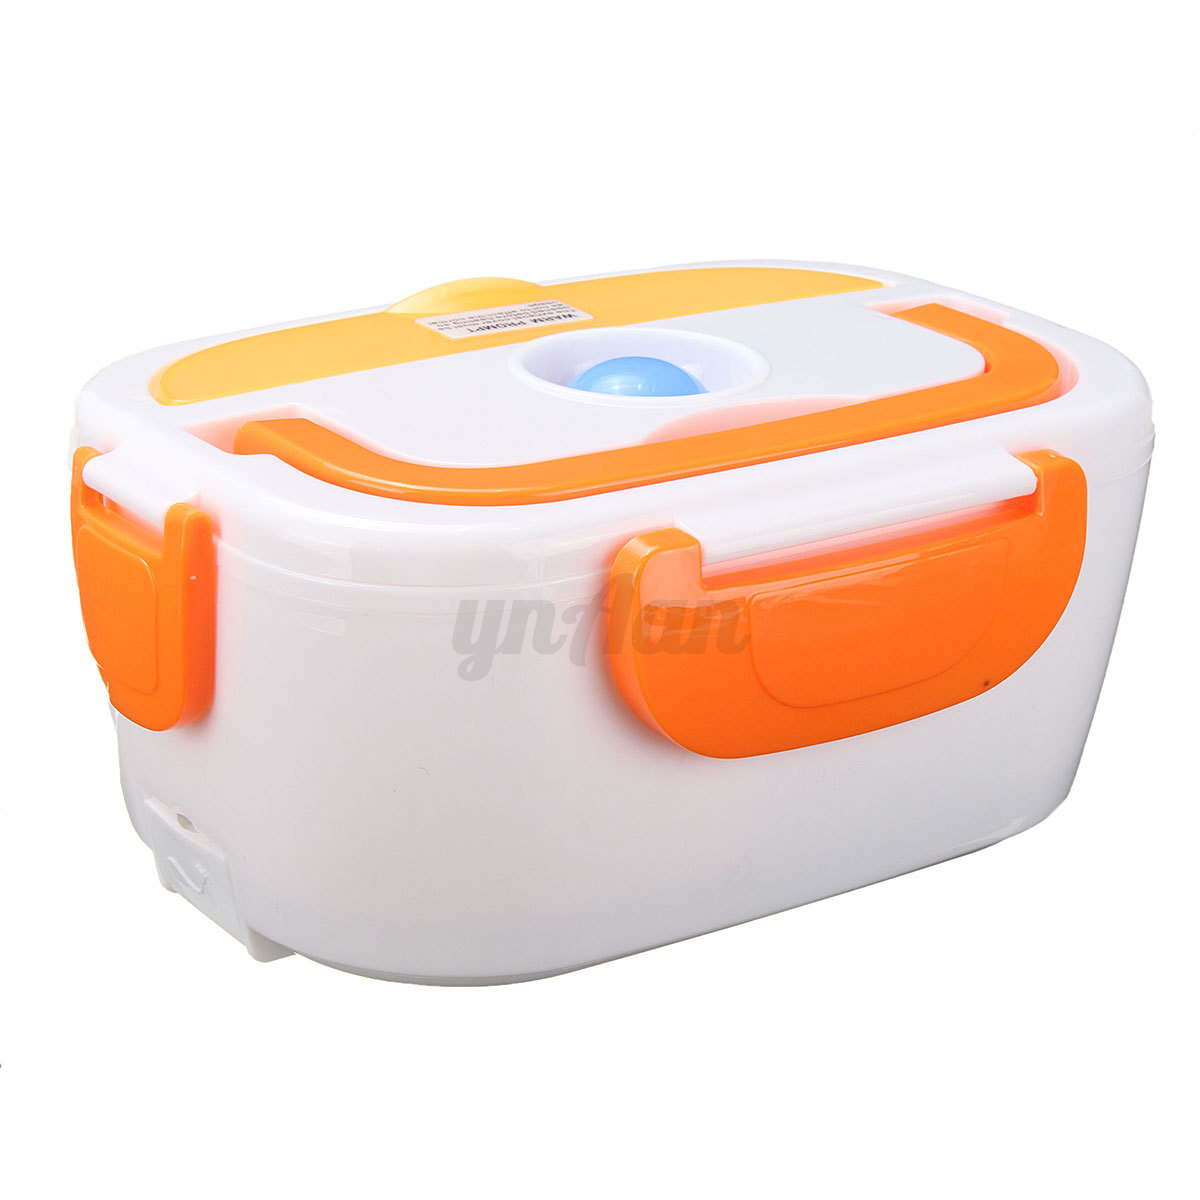 portable car plug electric heated lunch box heating bento food warmer 12v. Black Bedroom Furniture Sets. Home Design Ideas